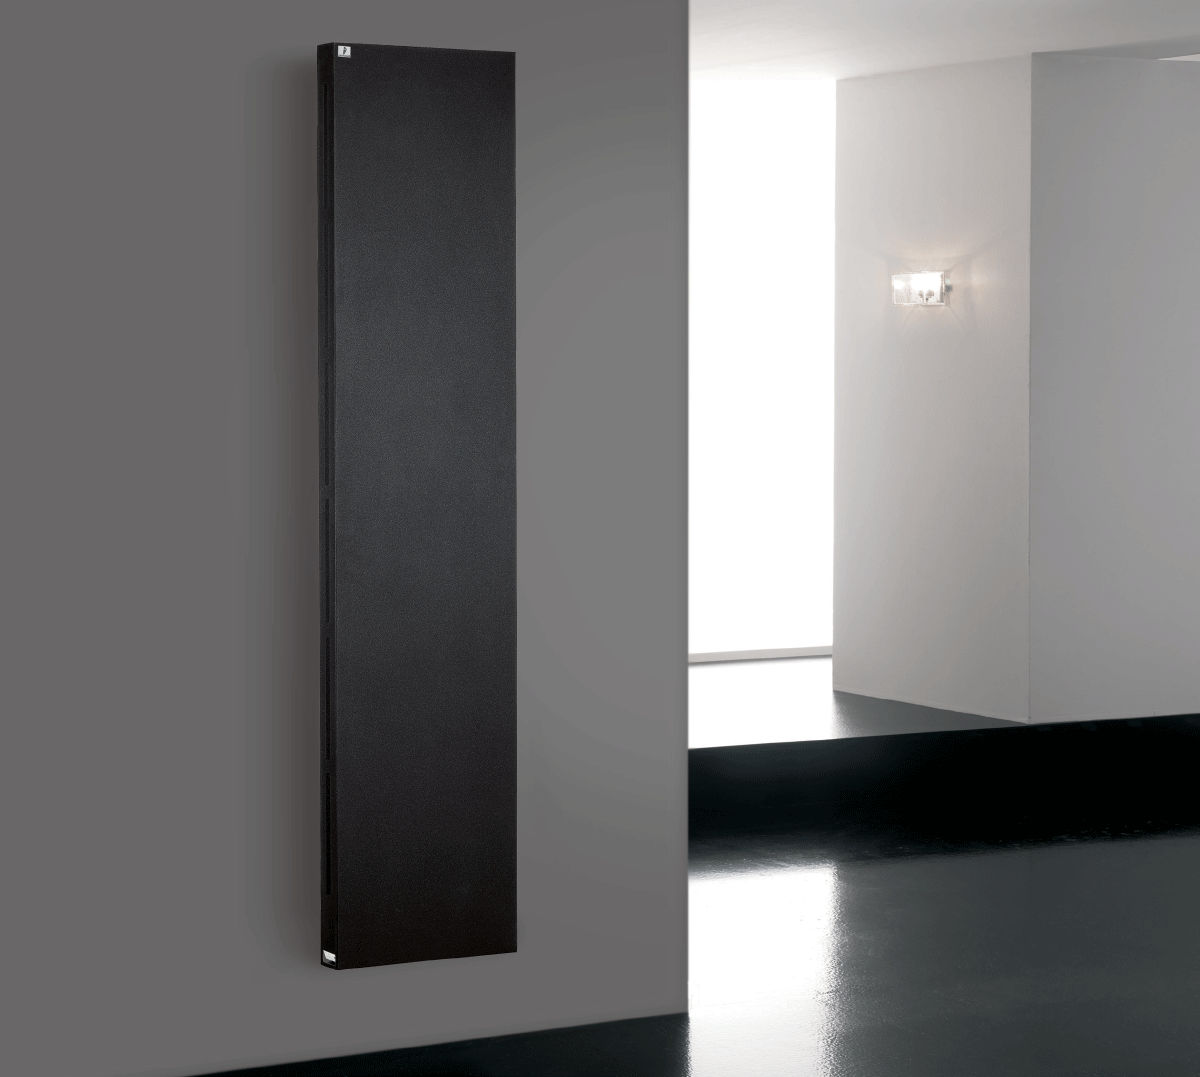 Electric radiator / metal / contemporary / rectangular ... on electric heating elements, electric floor heating under tile, electric panel hardware, electric panel signs, motor heaters, electric panel covers, electric heat, electric heating systems, electric heating panels, electric sockets, electric panel meters, wood heaters, electric fires, electric panel locks, electric panel doors, electric irons, electric cab heater, electric panel surge protector, hot water baseboard heaters, driveway heaters,